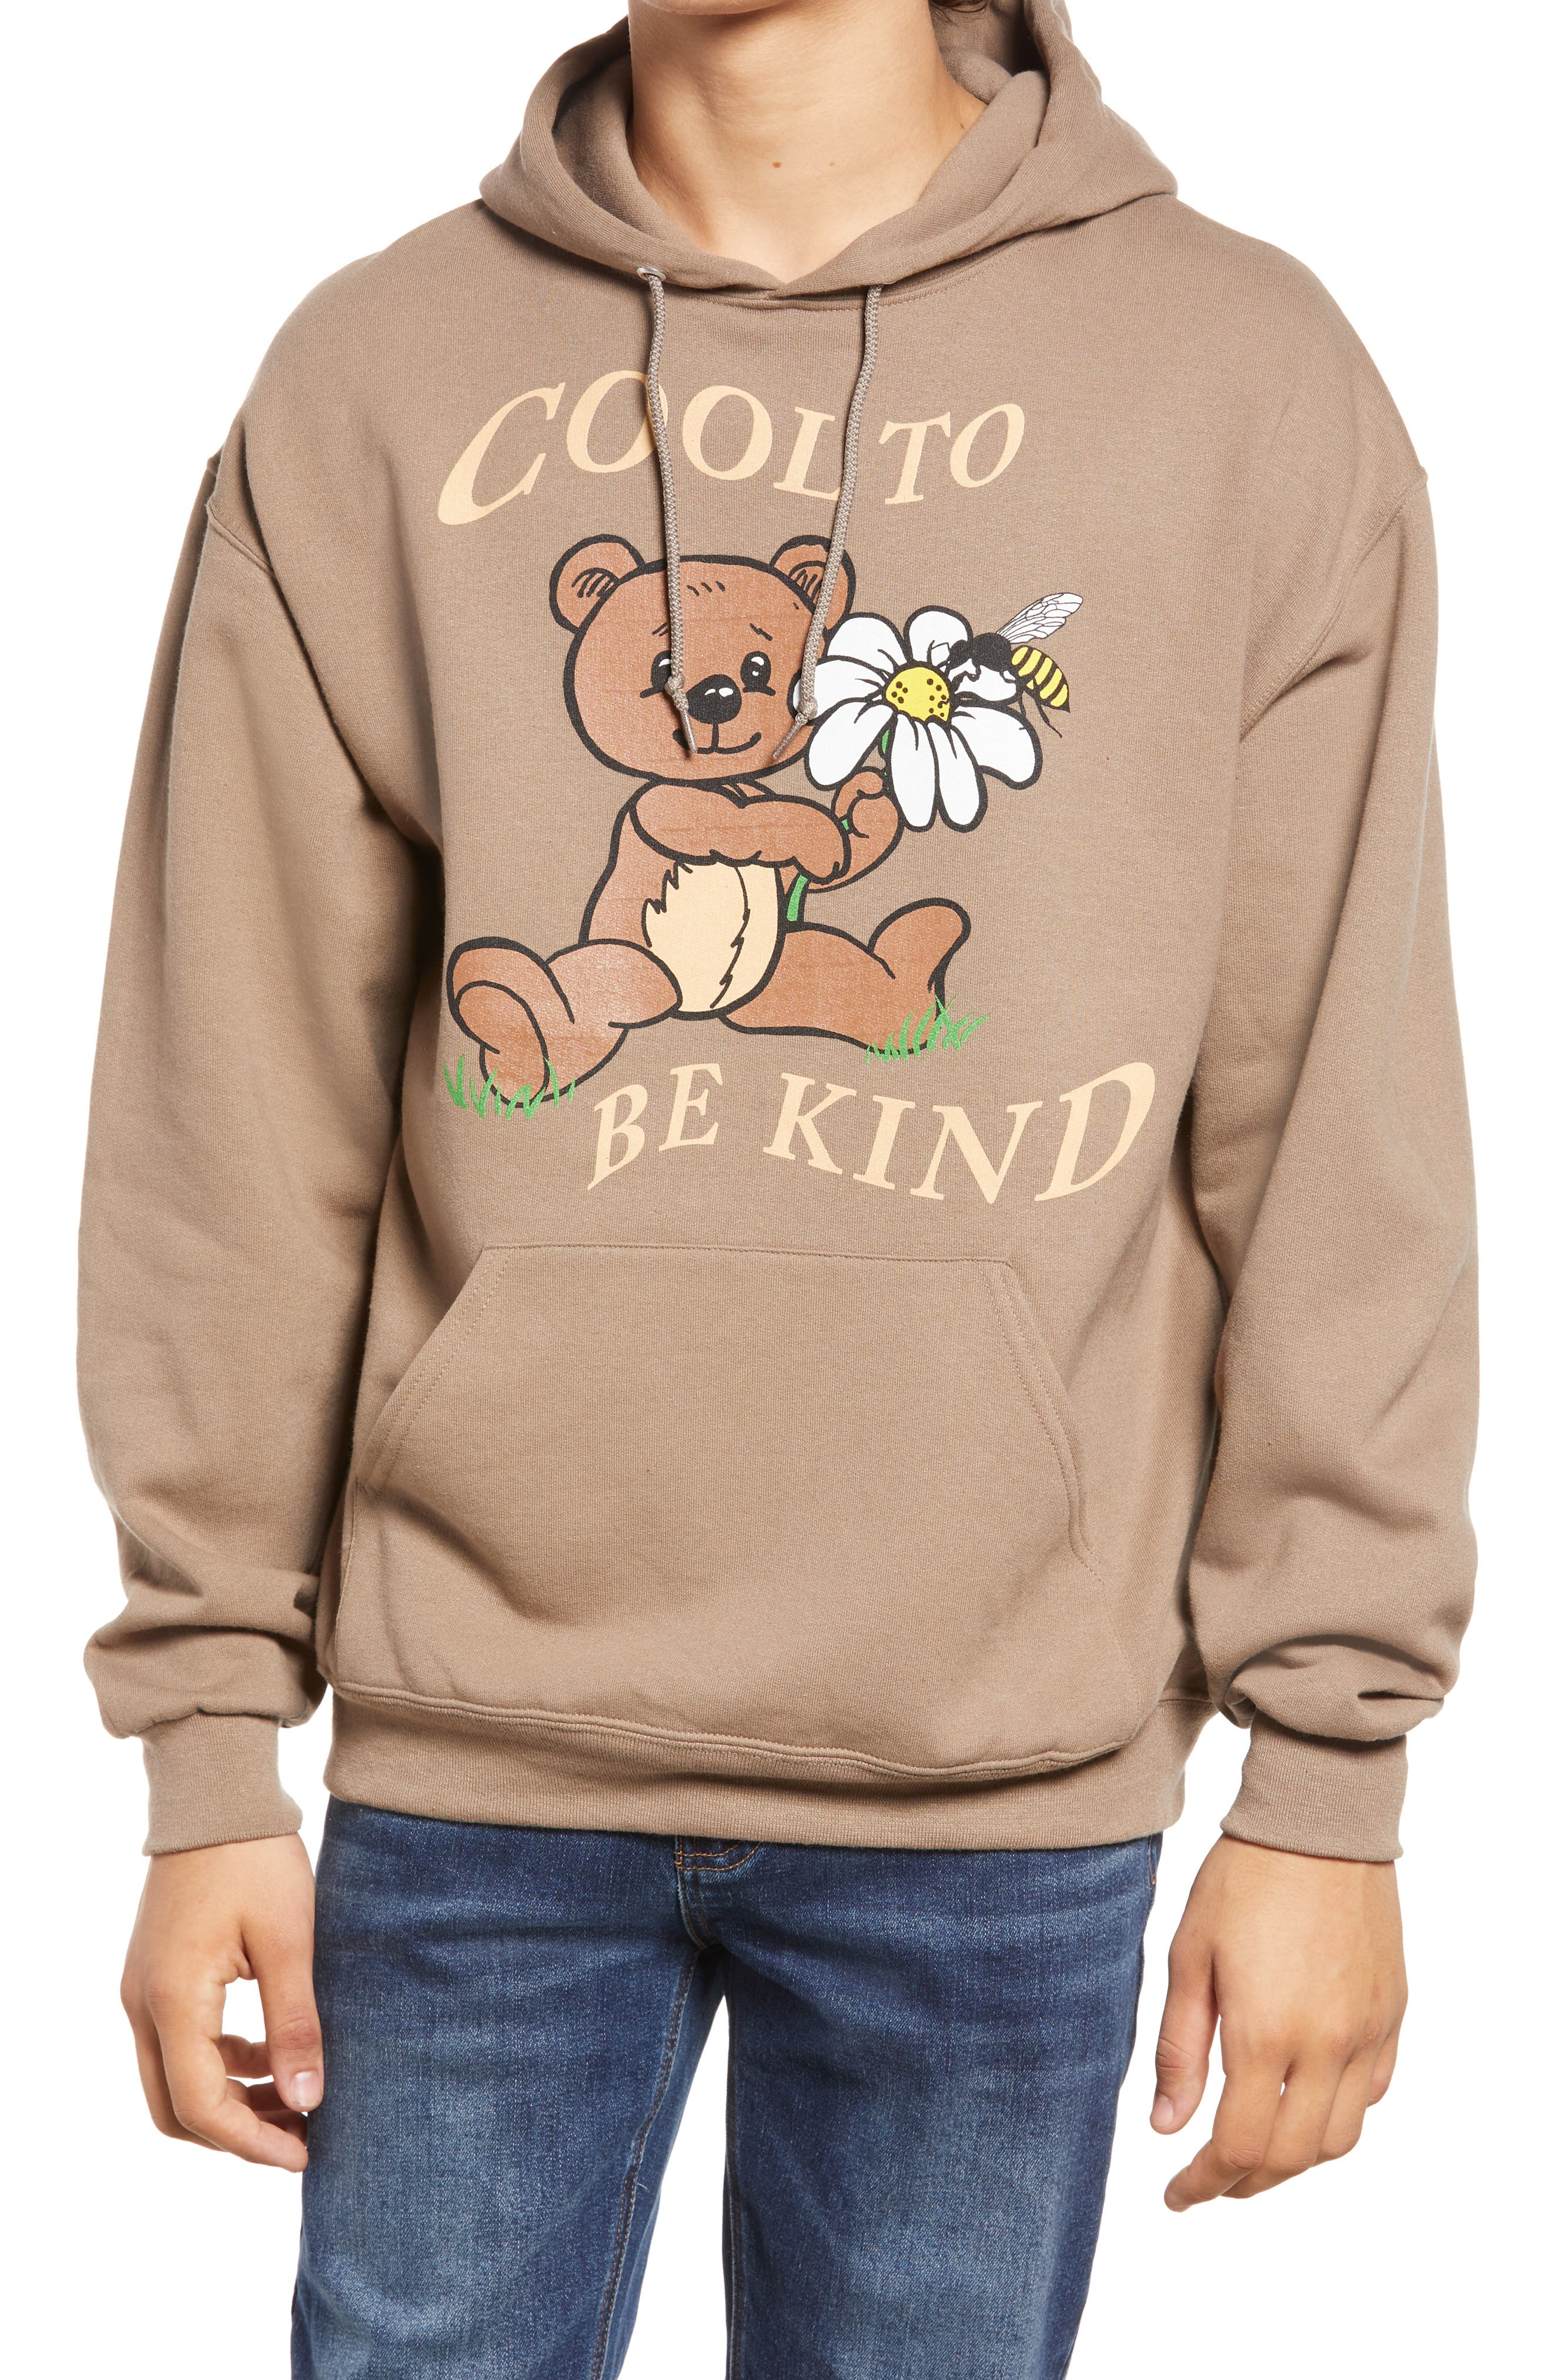 Men's Cool To Be Kind Graphic Hoodie